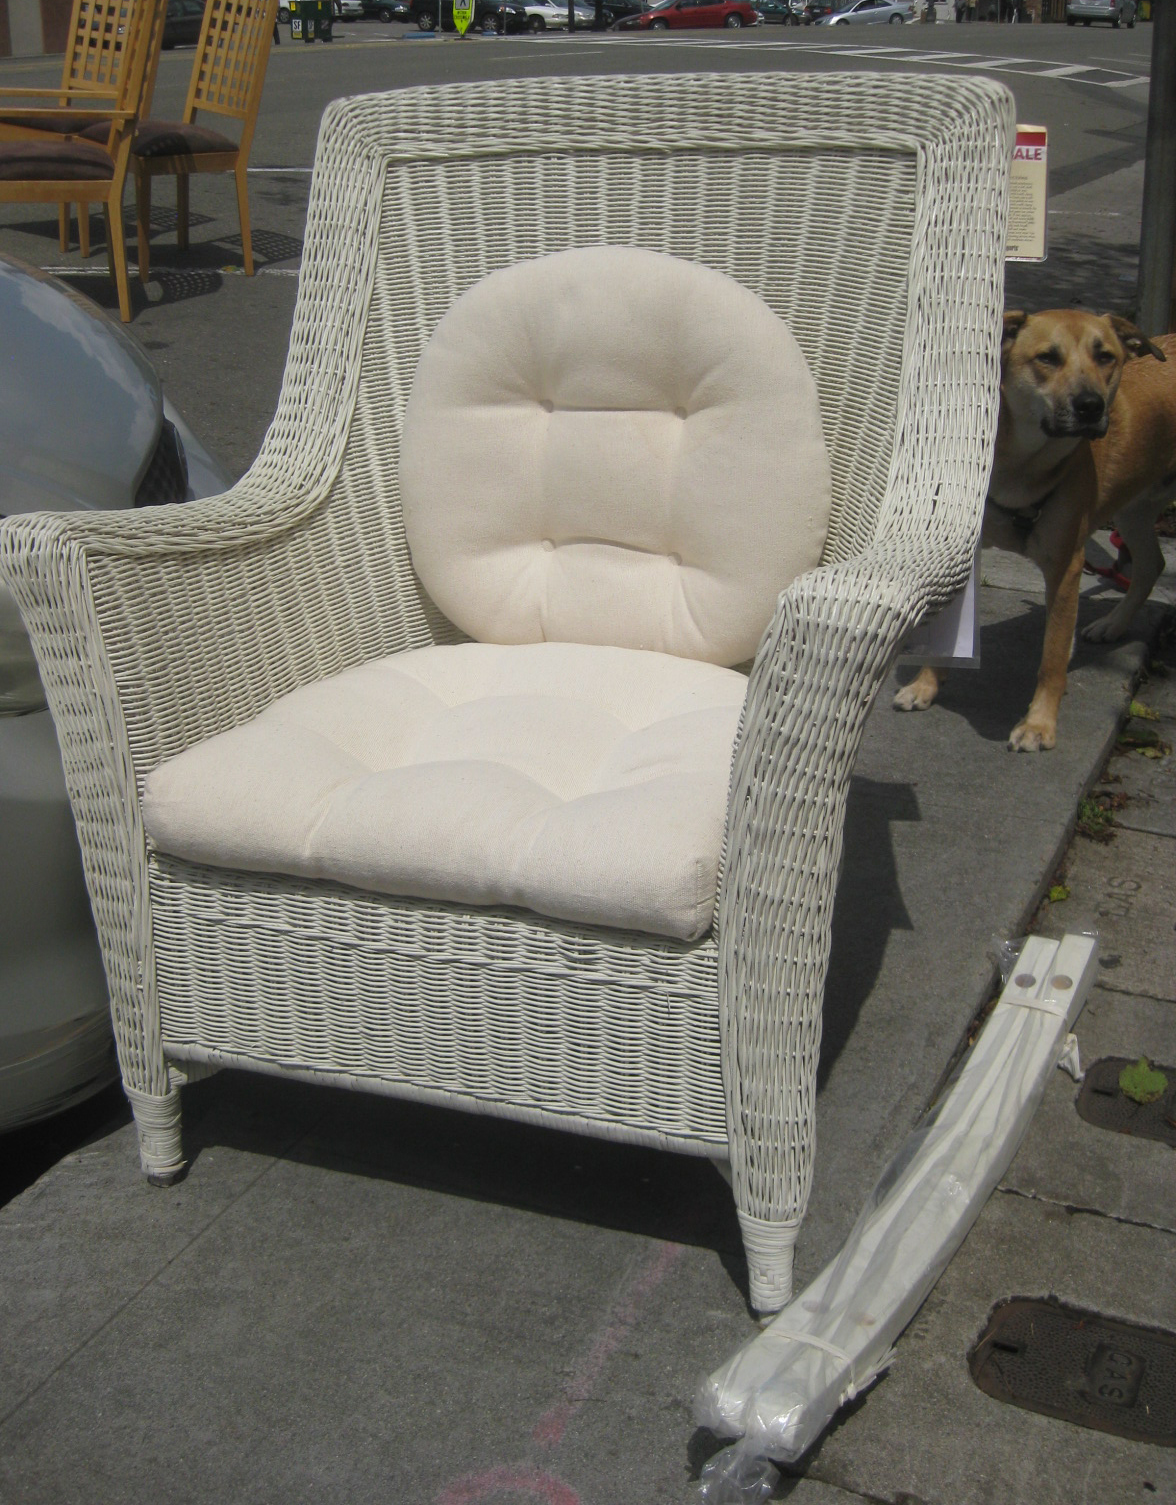 Pier One Wicker Chairs Uhuru Furniture And Collectibles Sold Pier 1 Wicker Chair